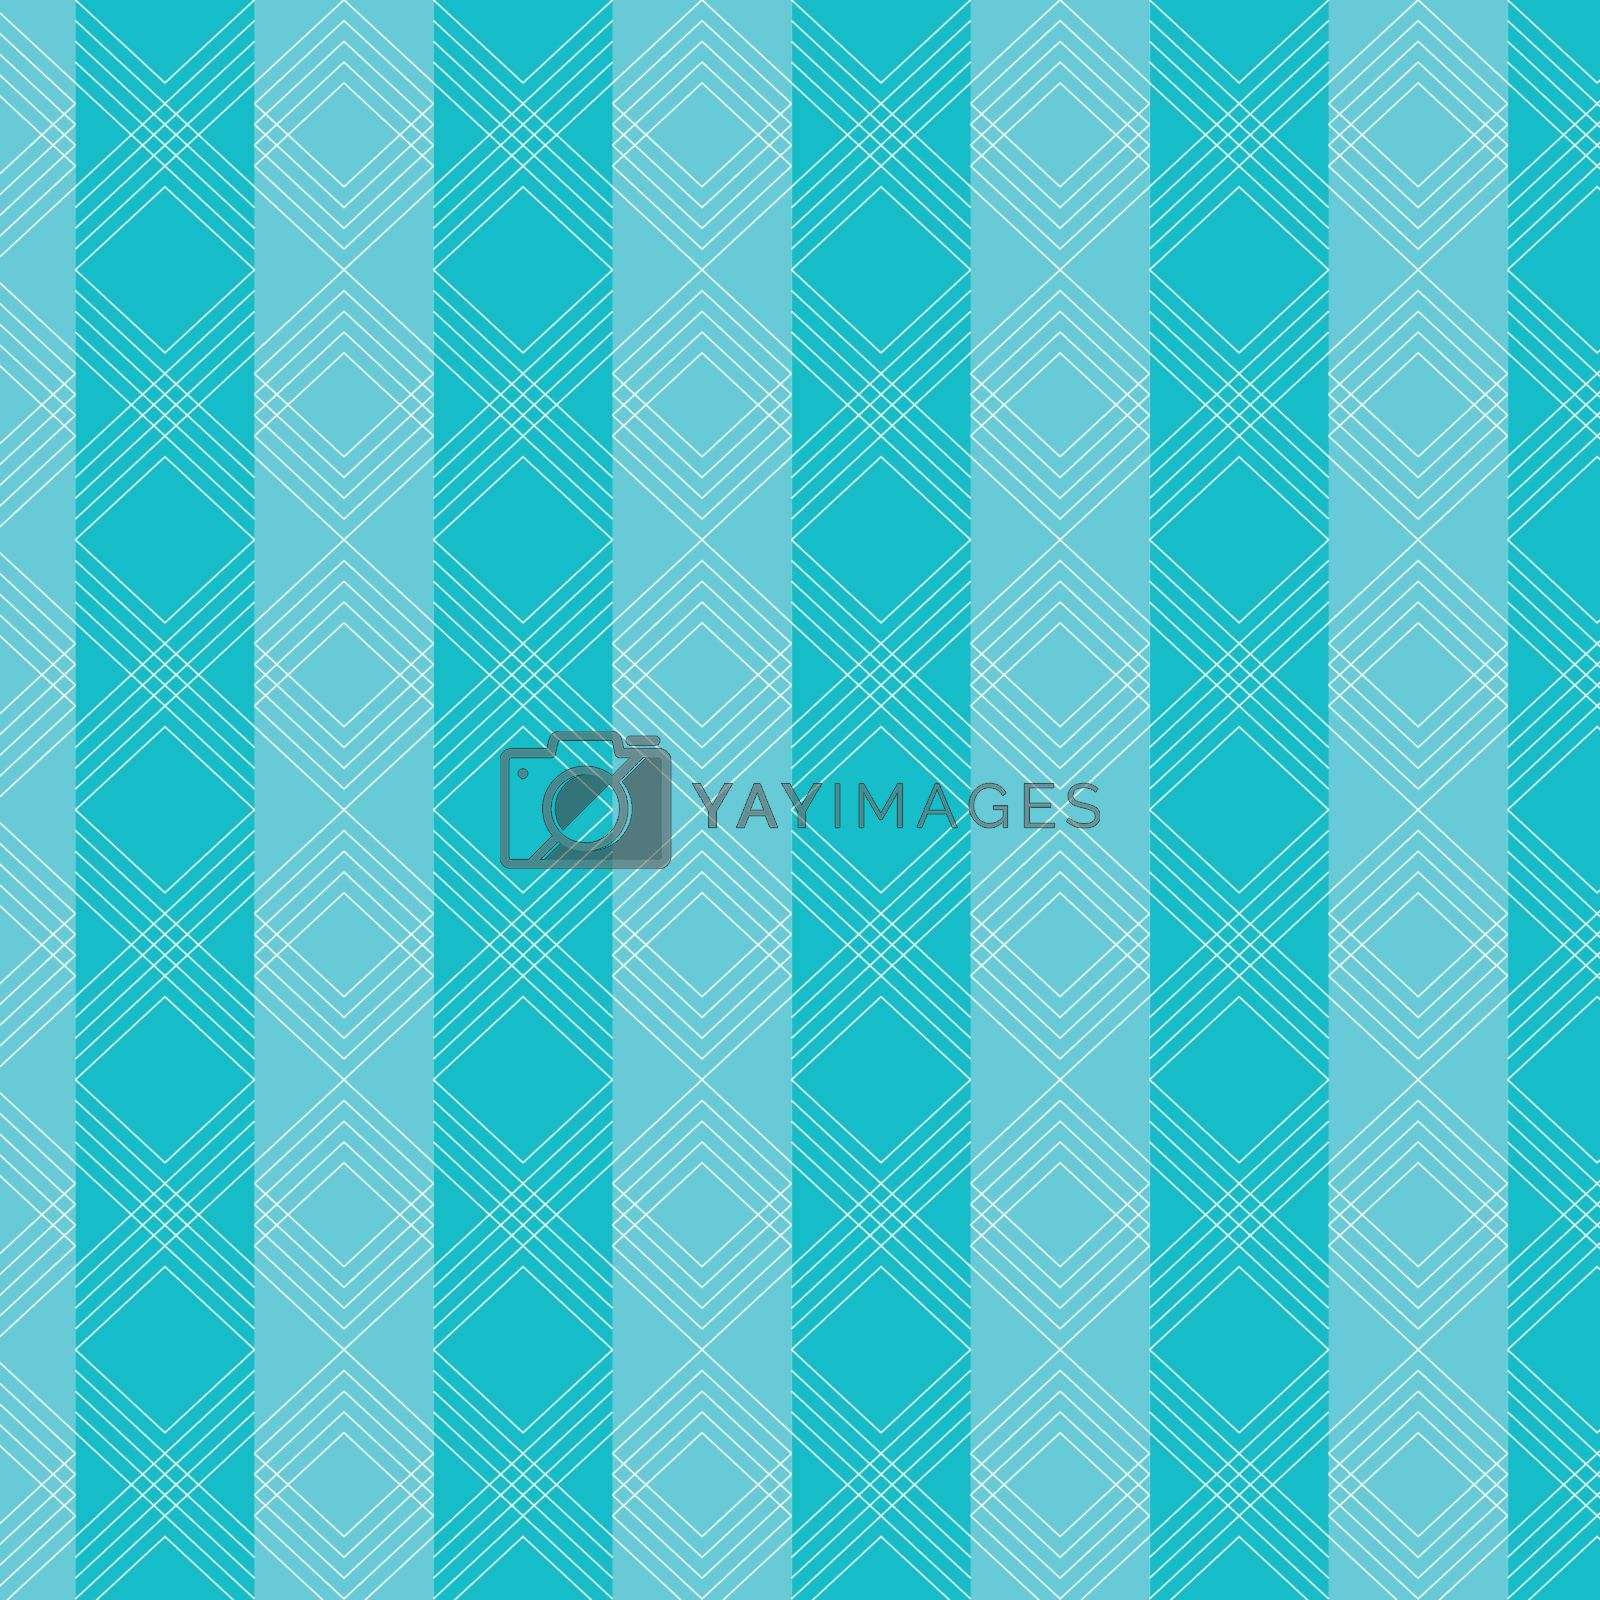 Triangles wavy lines pattern on blue striped background. Vector illustration